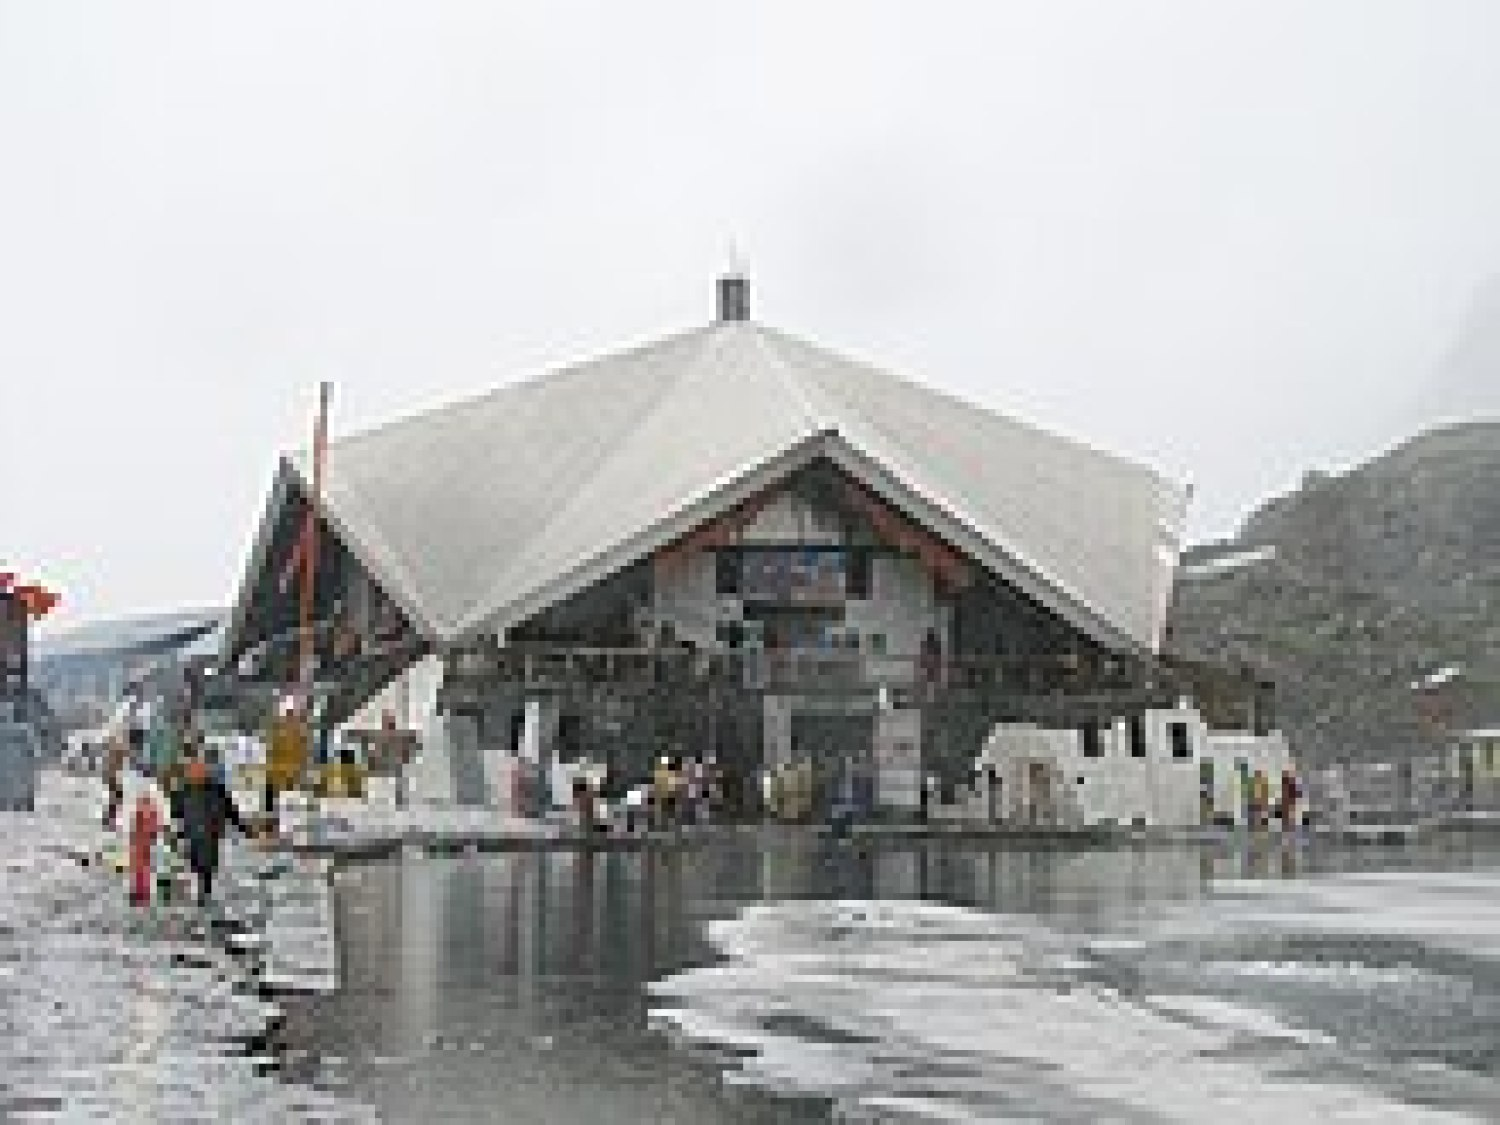 a pilgrimage site for Sikhs